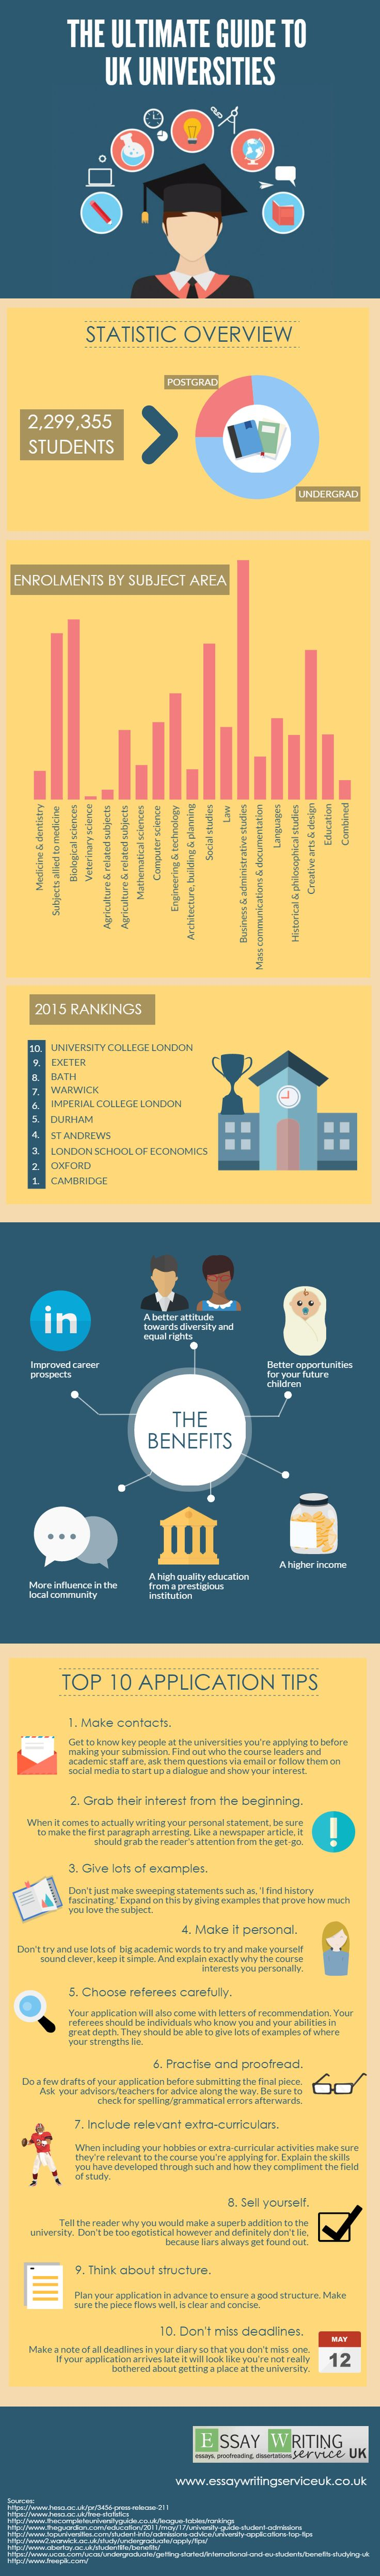 The Ultimate Guide to UK Universities Infographic - http://elearninginfographics.com/ultimate-guide-uk-universities-infographic/